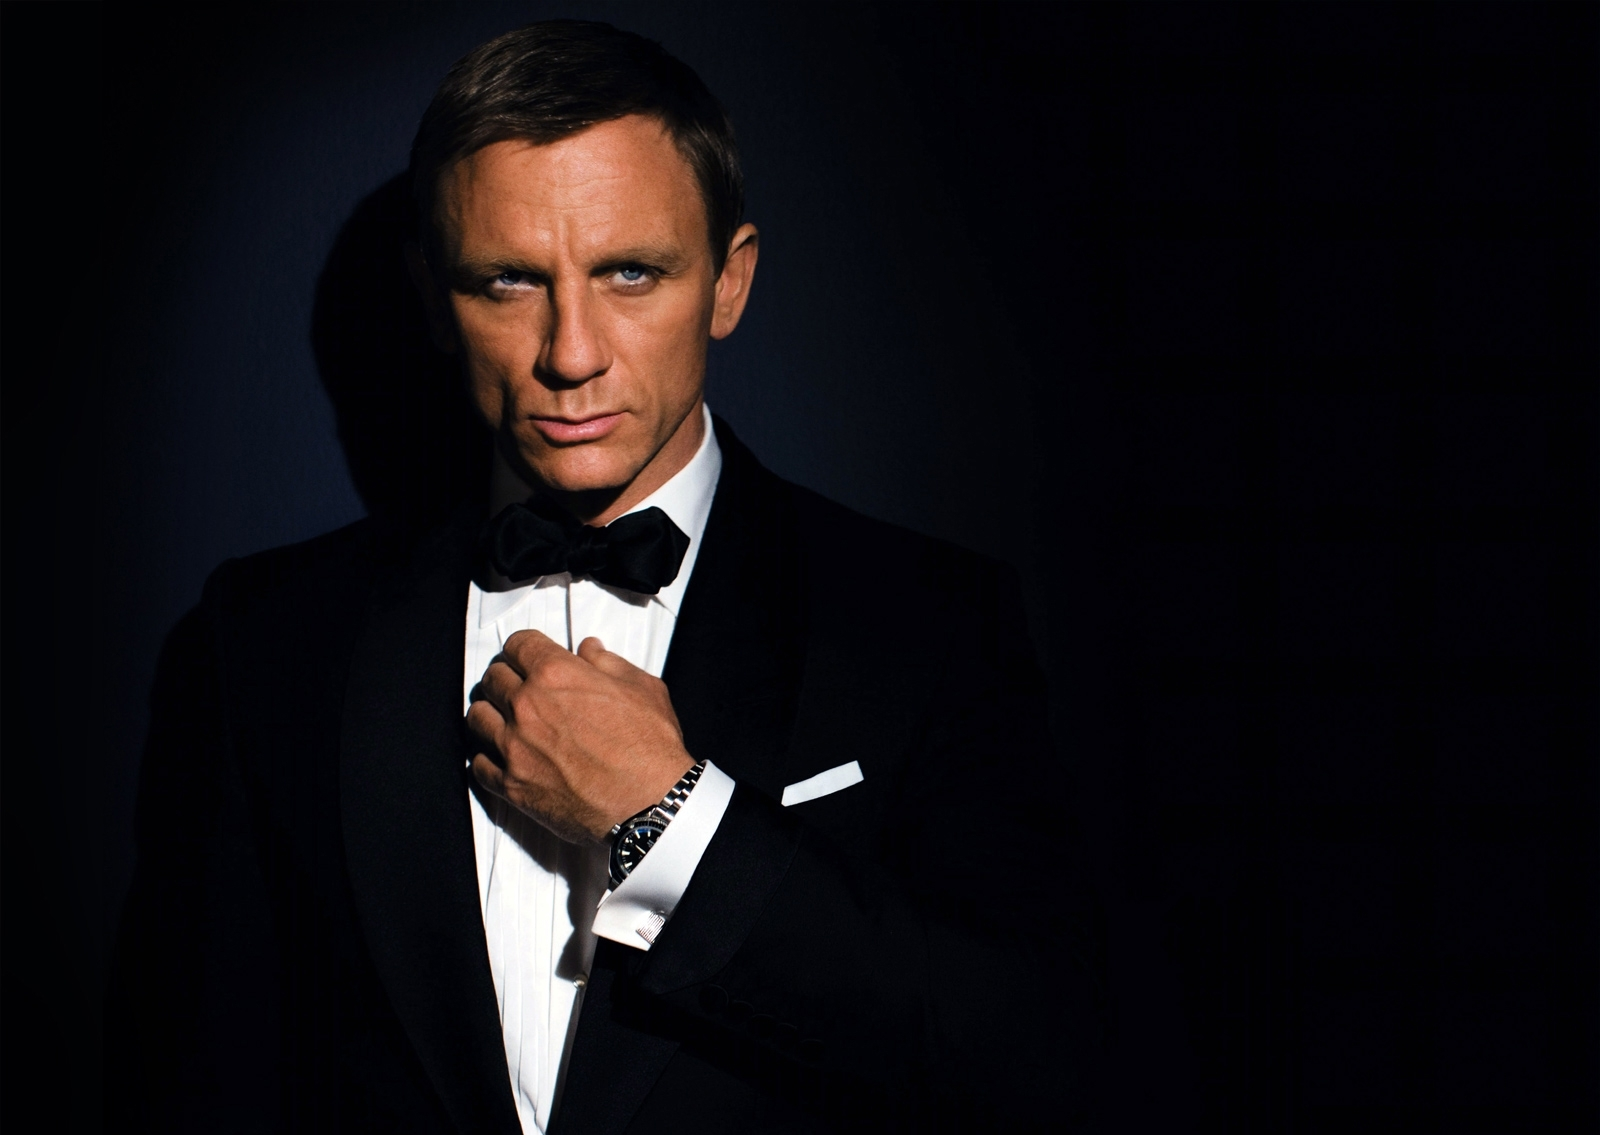 James Bond - How to act around women: What would a cool guy do?